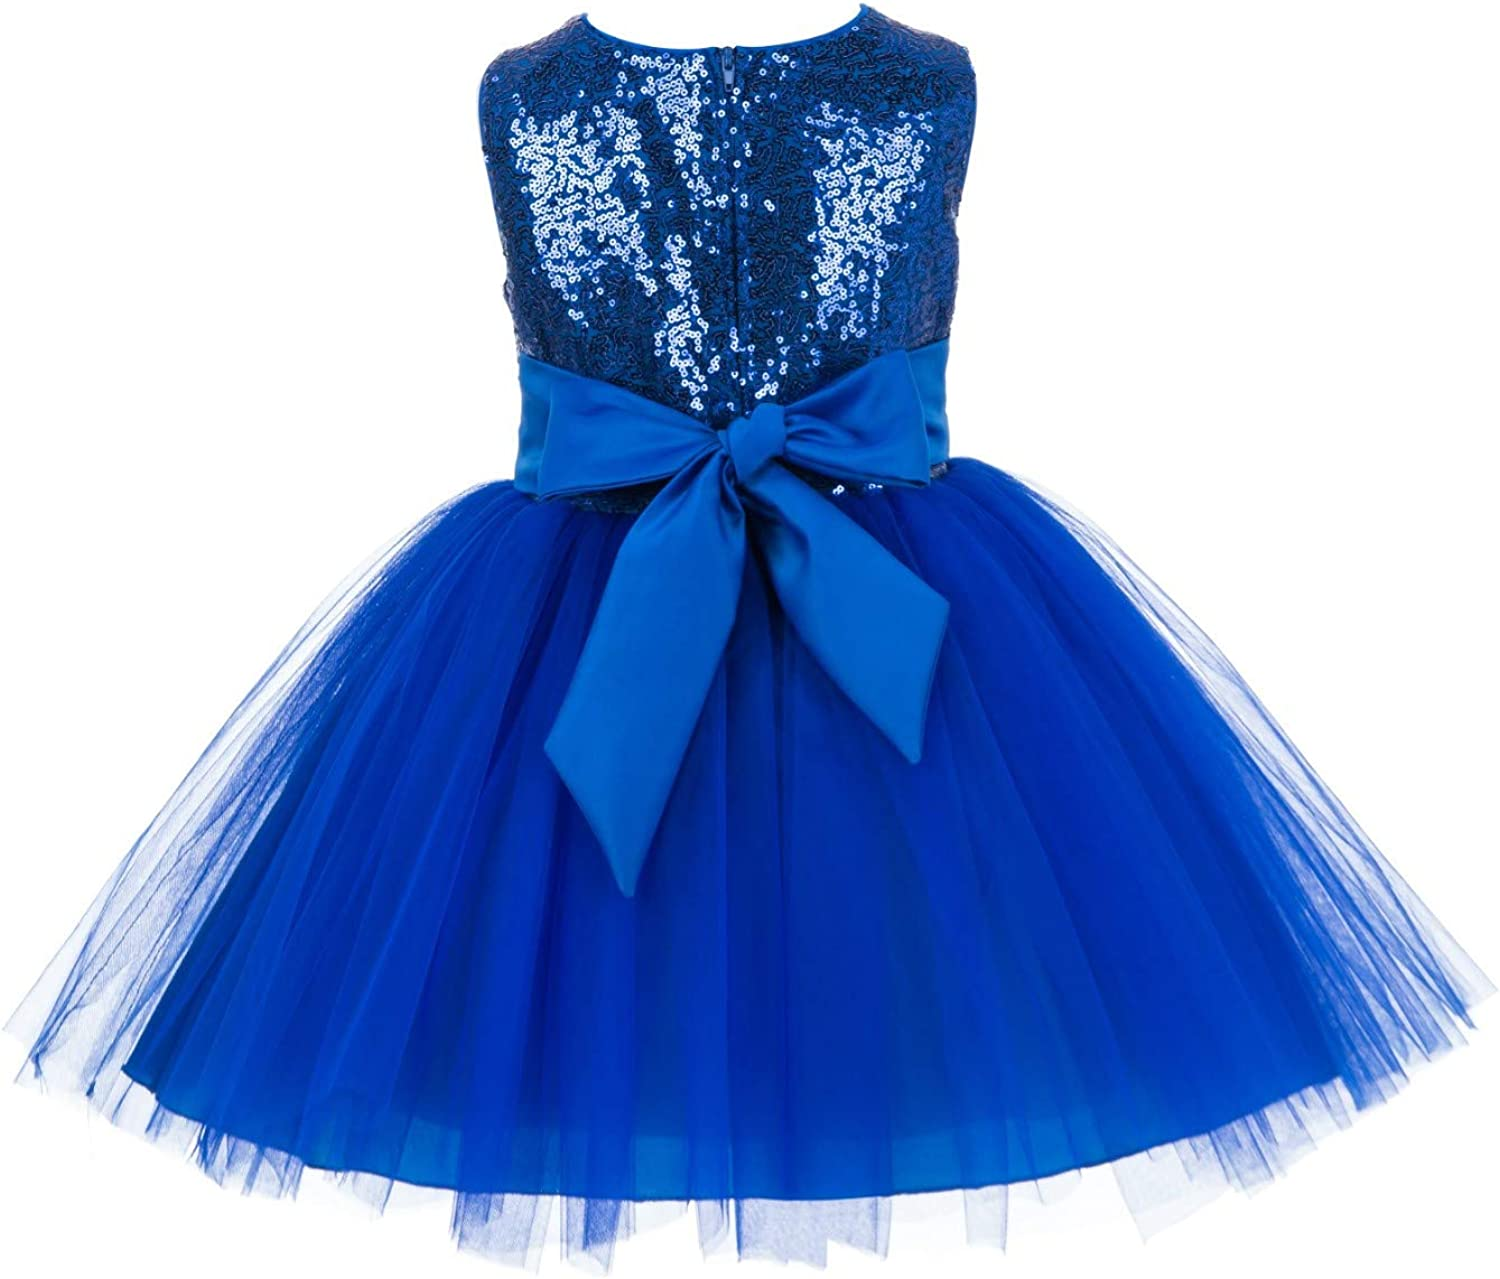 Sparkling Sequins Mesh Tulle Flower Girl Dress Special Events Pageants 124